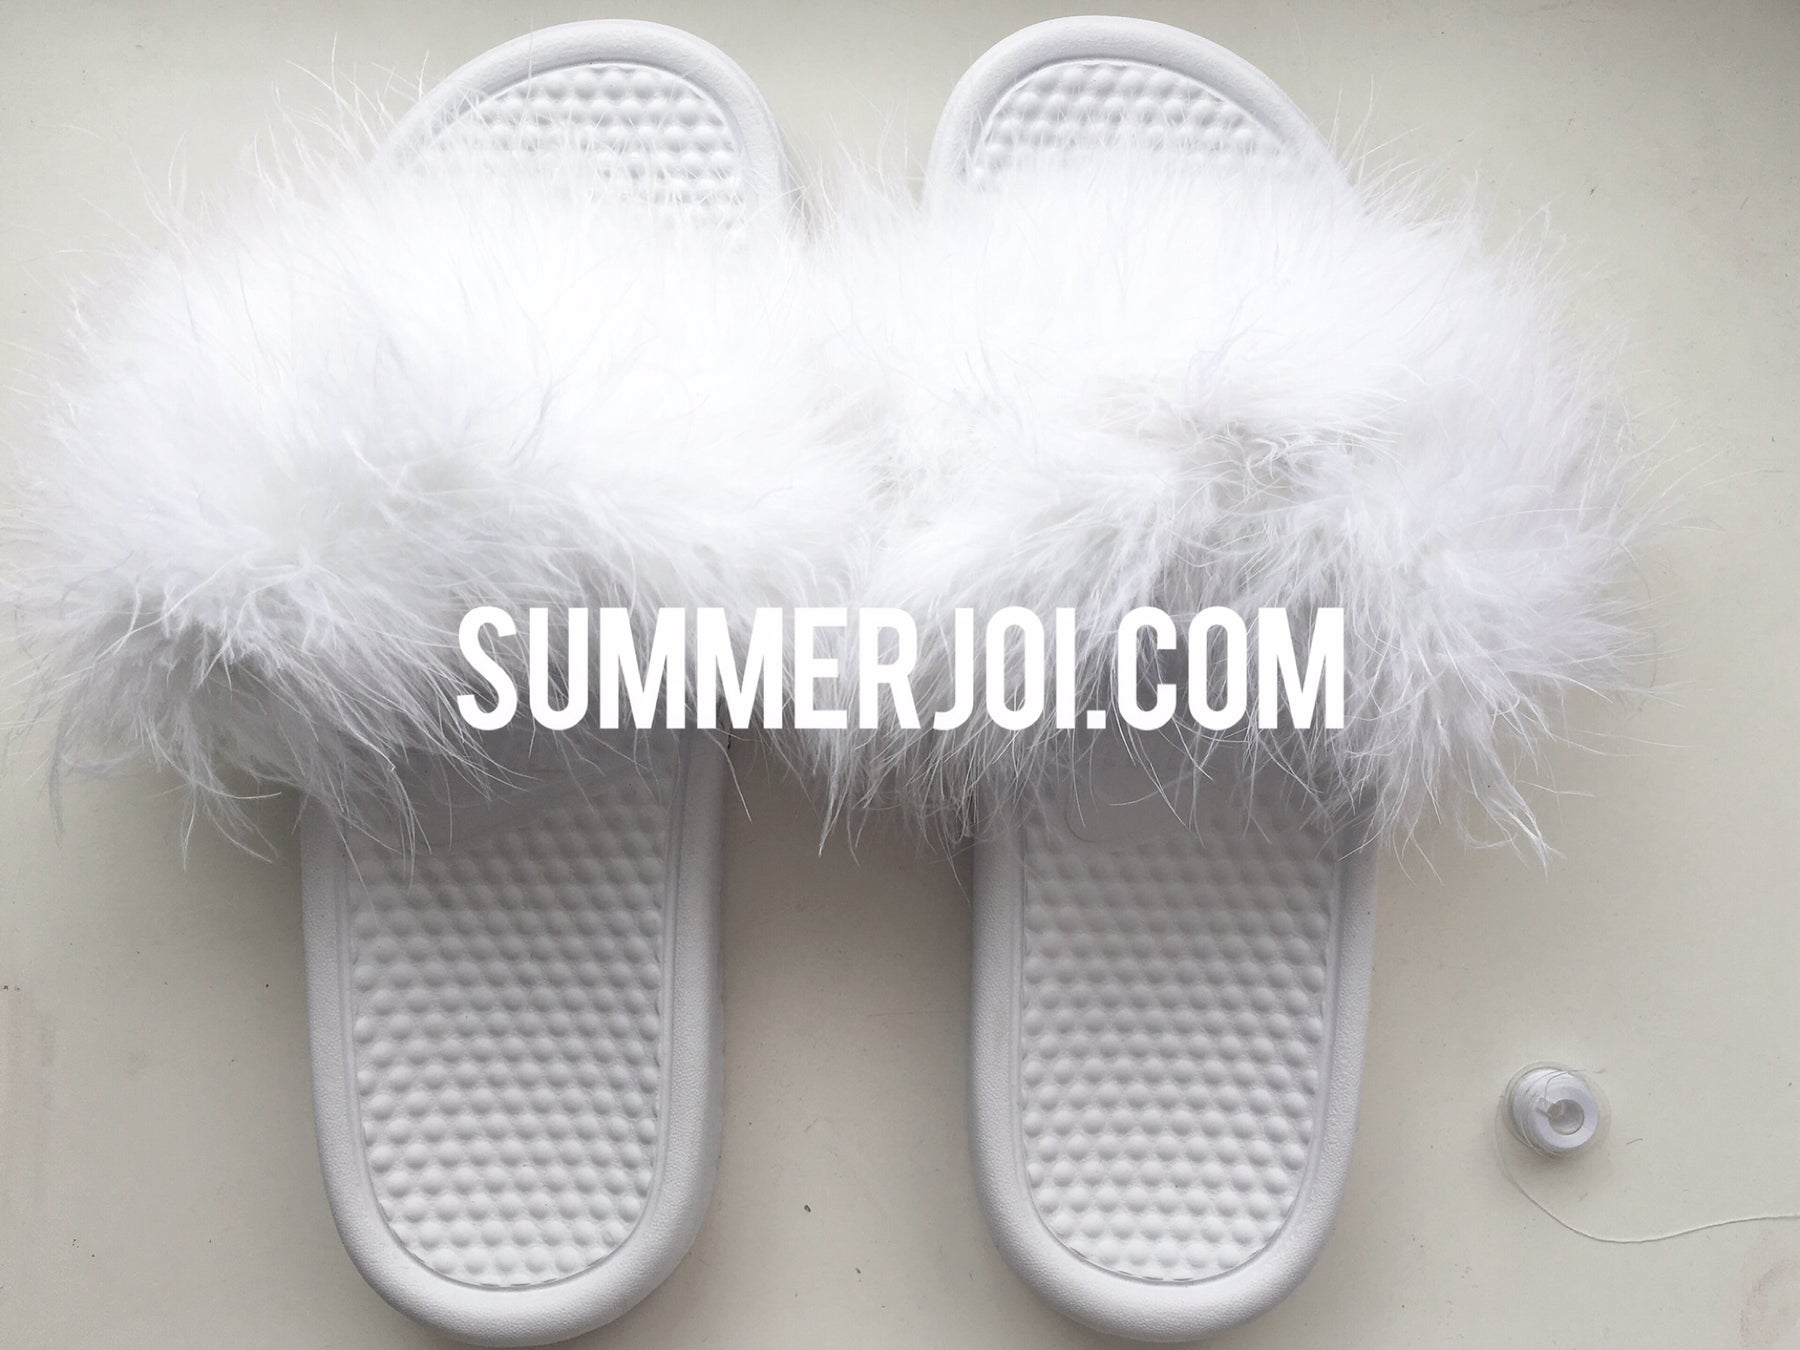 2051bbc317871 Image of All White Everything Faux Fur Nike Slides by Summer Joi ...